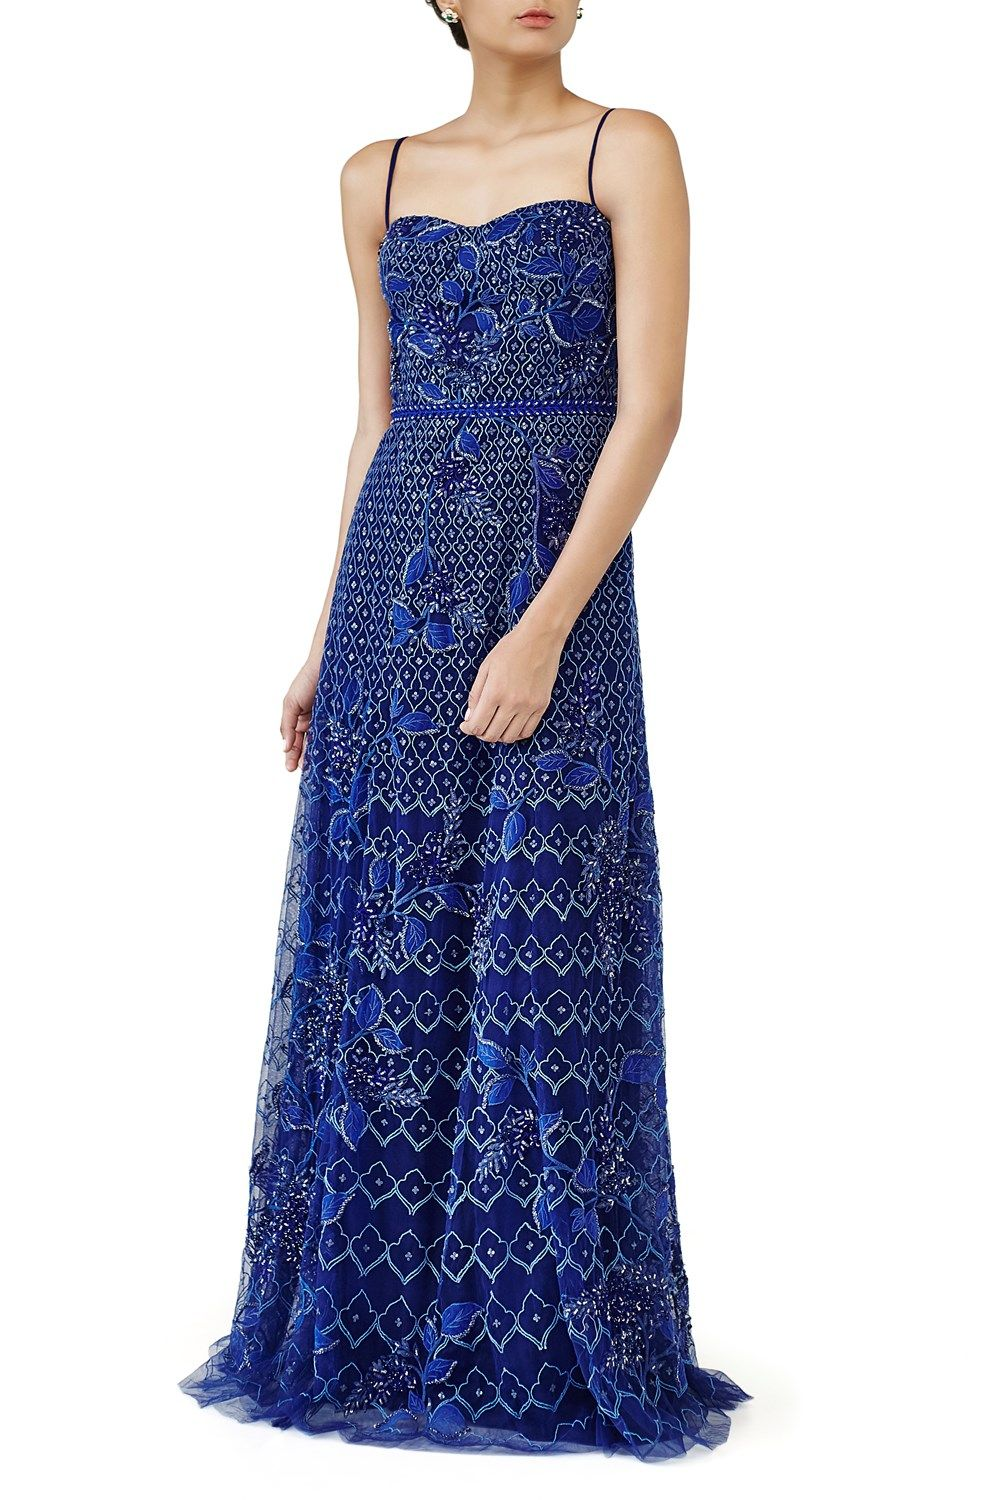 dc0f14218b4 Featuring a navy blue shoulder strap gown crafted in net with dori  embroidery and sequin embellishment